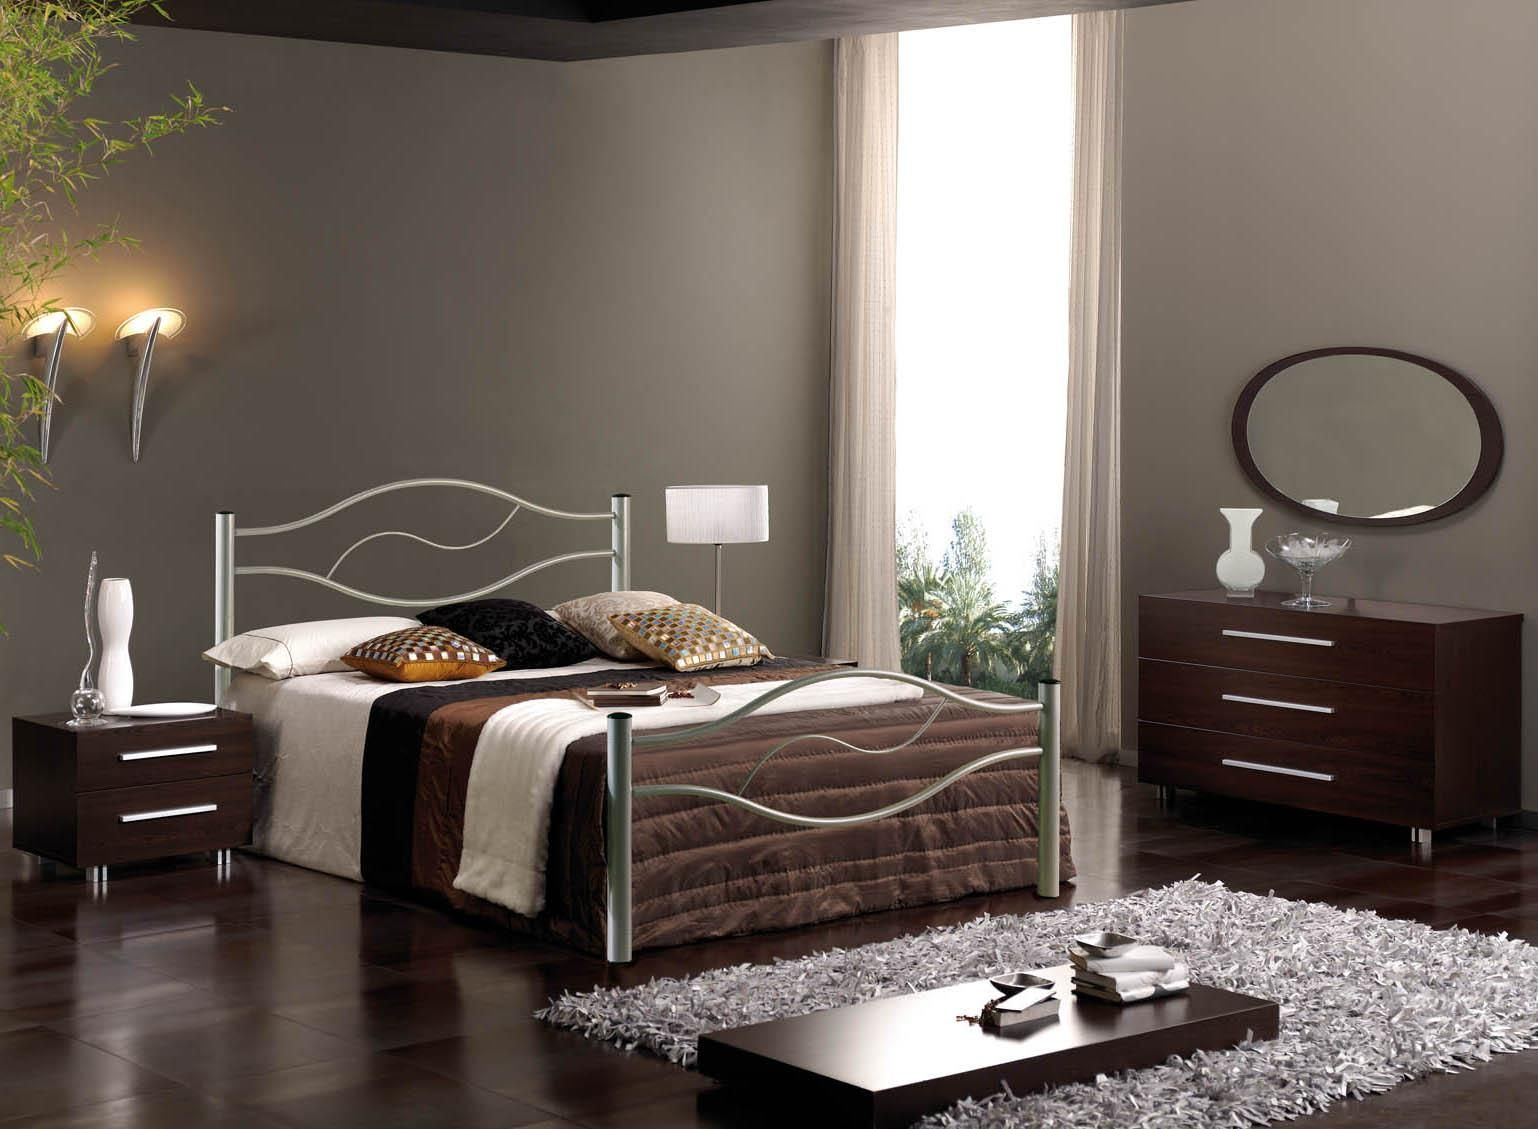 Small Romantic Bedroom Design Idea listed in